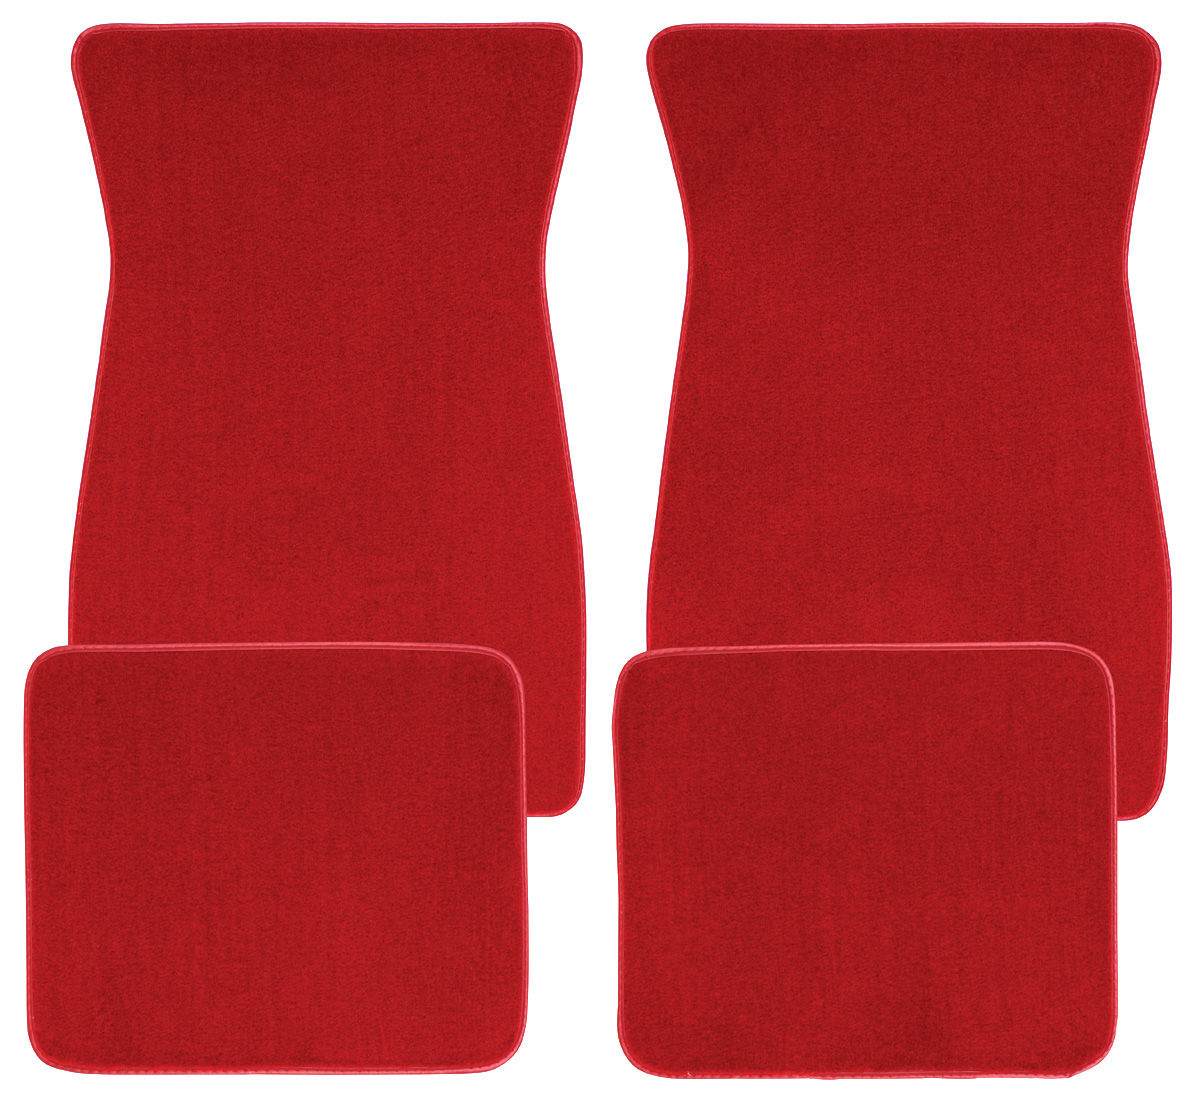 Photo of Floor Mats, Carpet Matched Oem Style Carpet plain